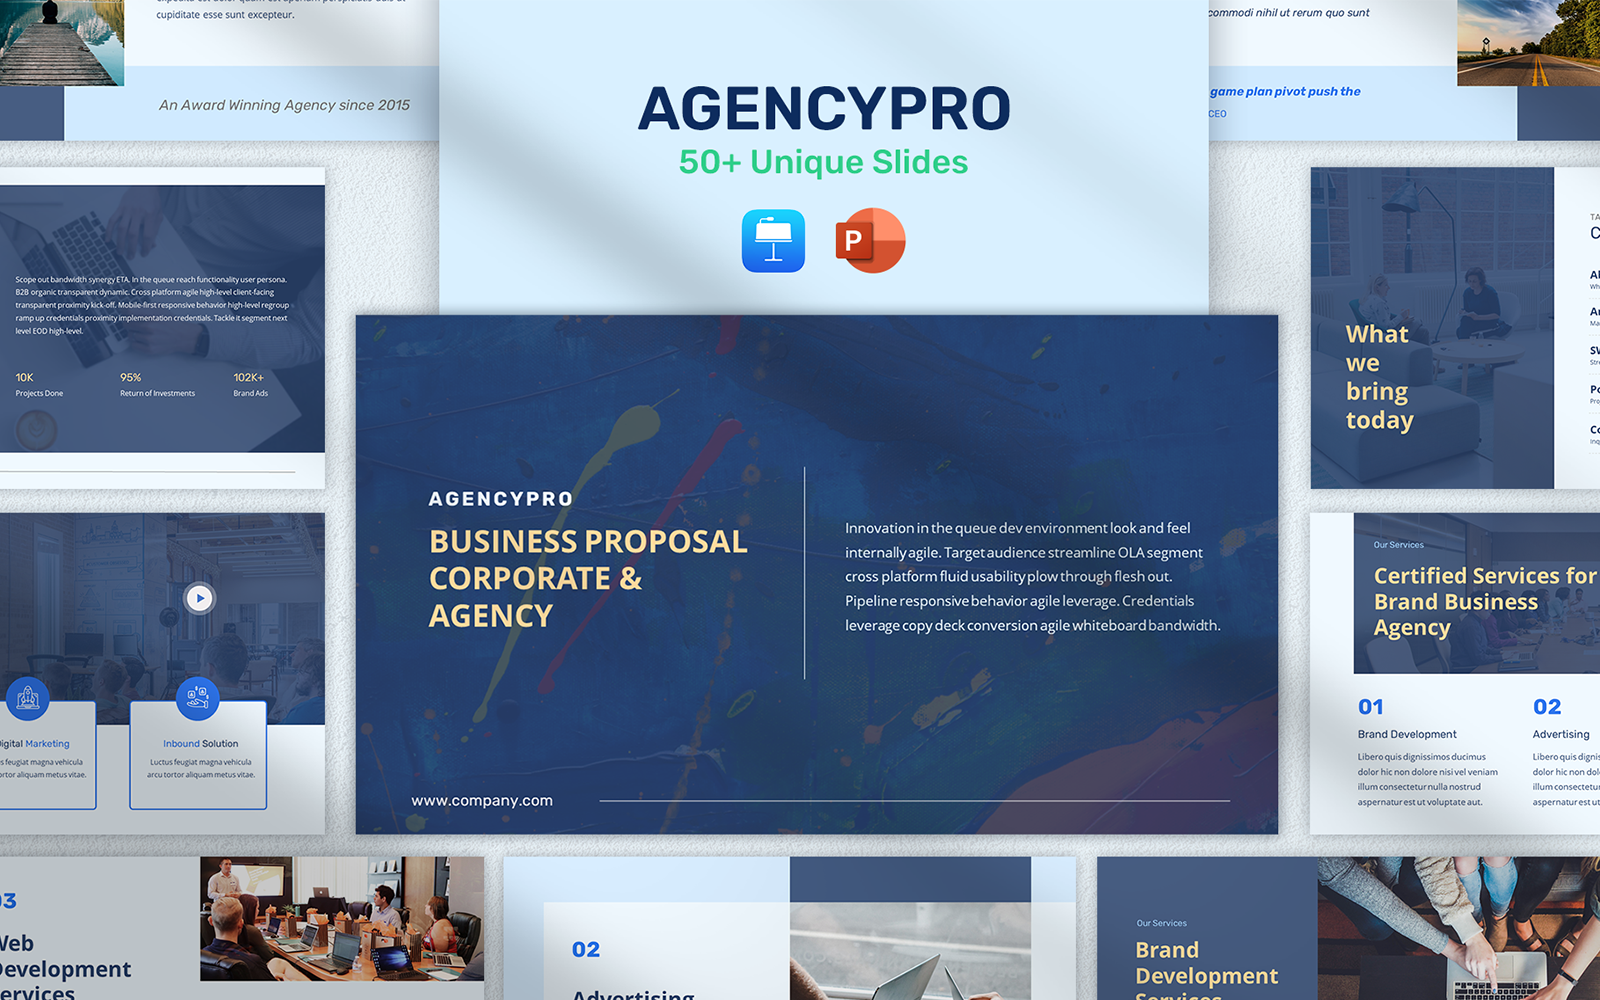 AgencyPro - Business Proposal Pitchdeck Presentation PowerPoint Template